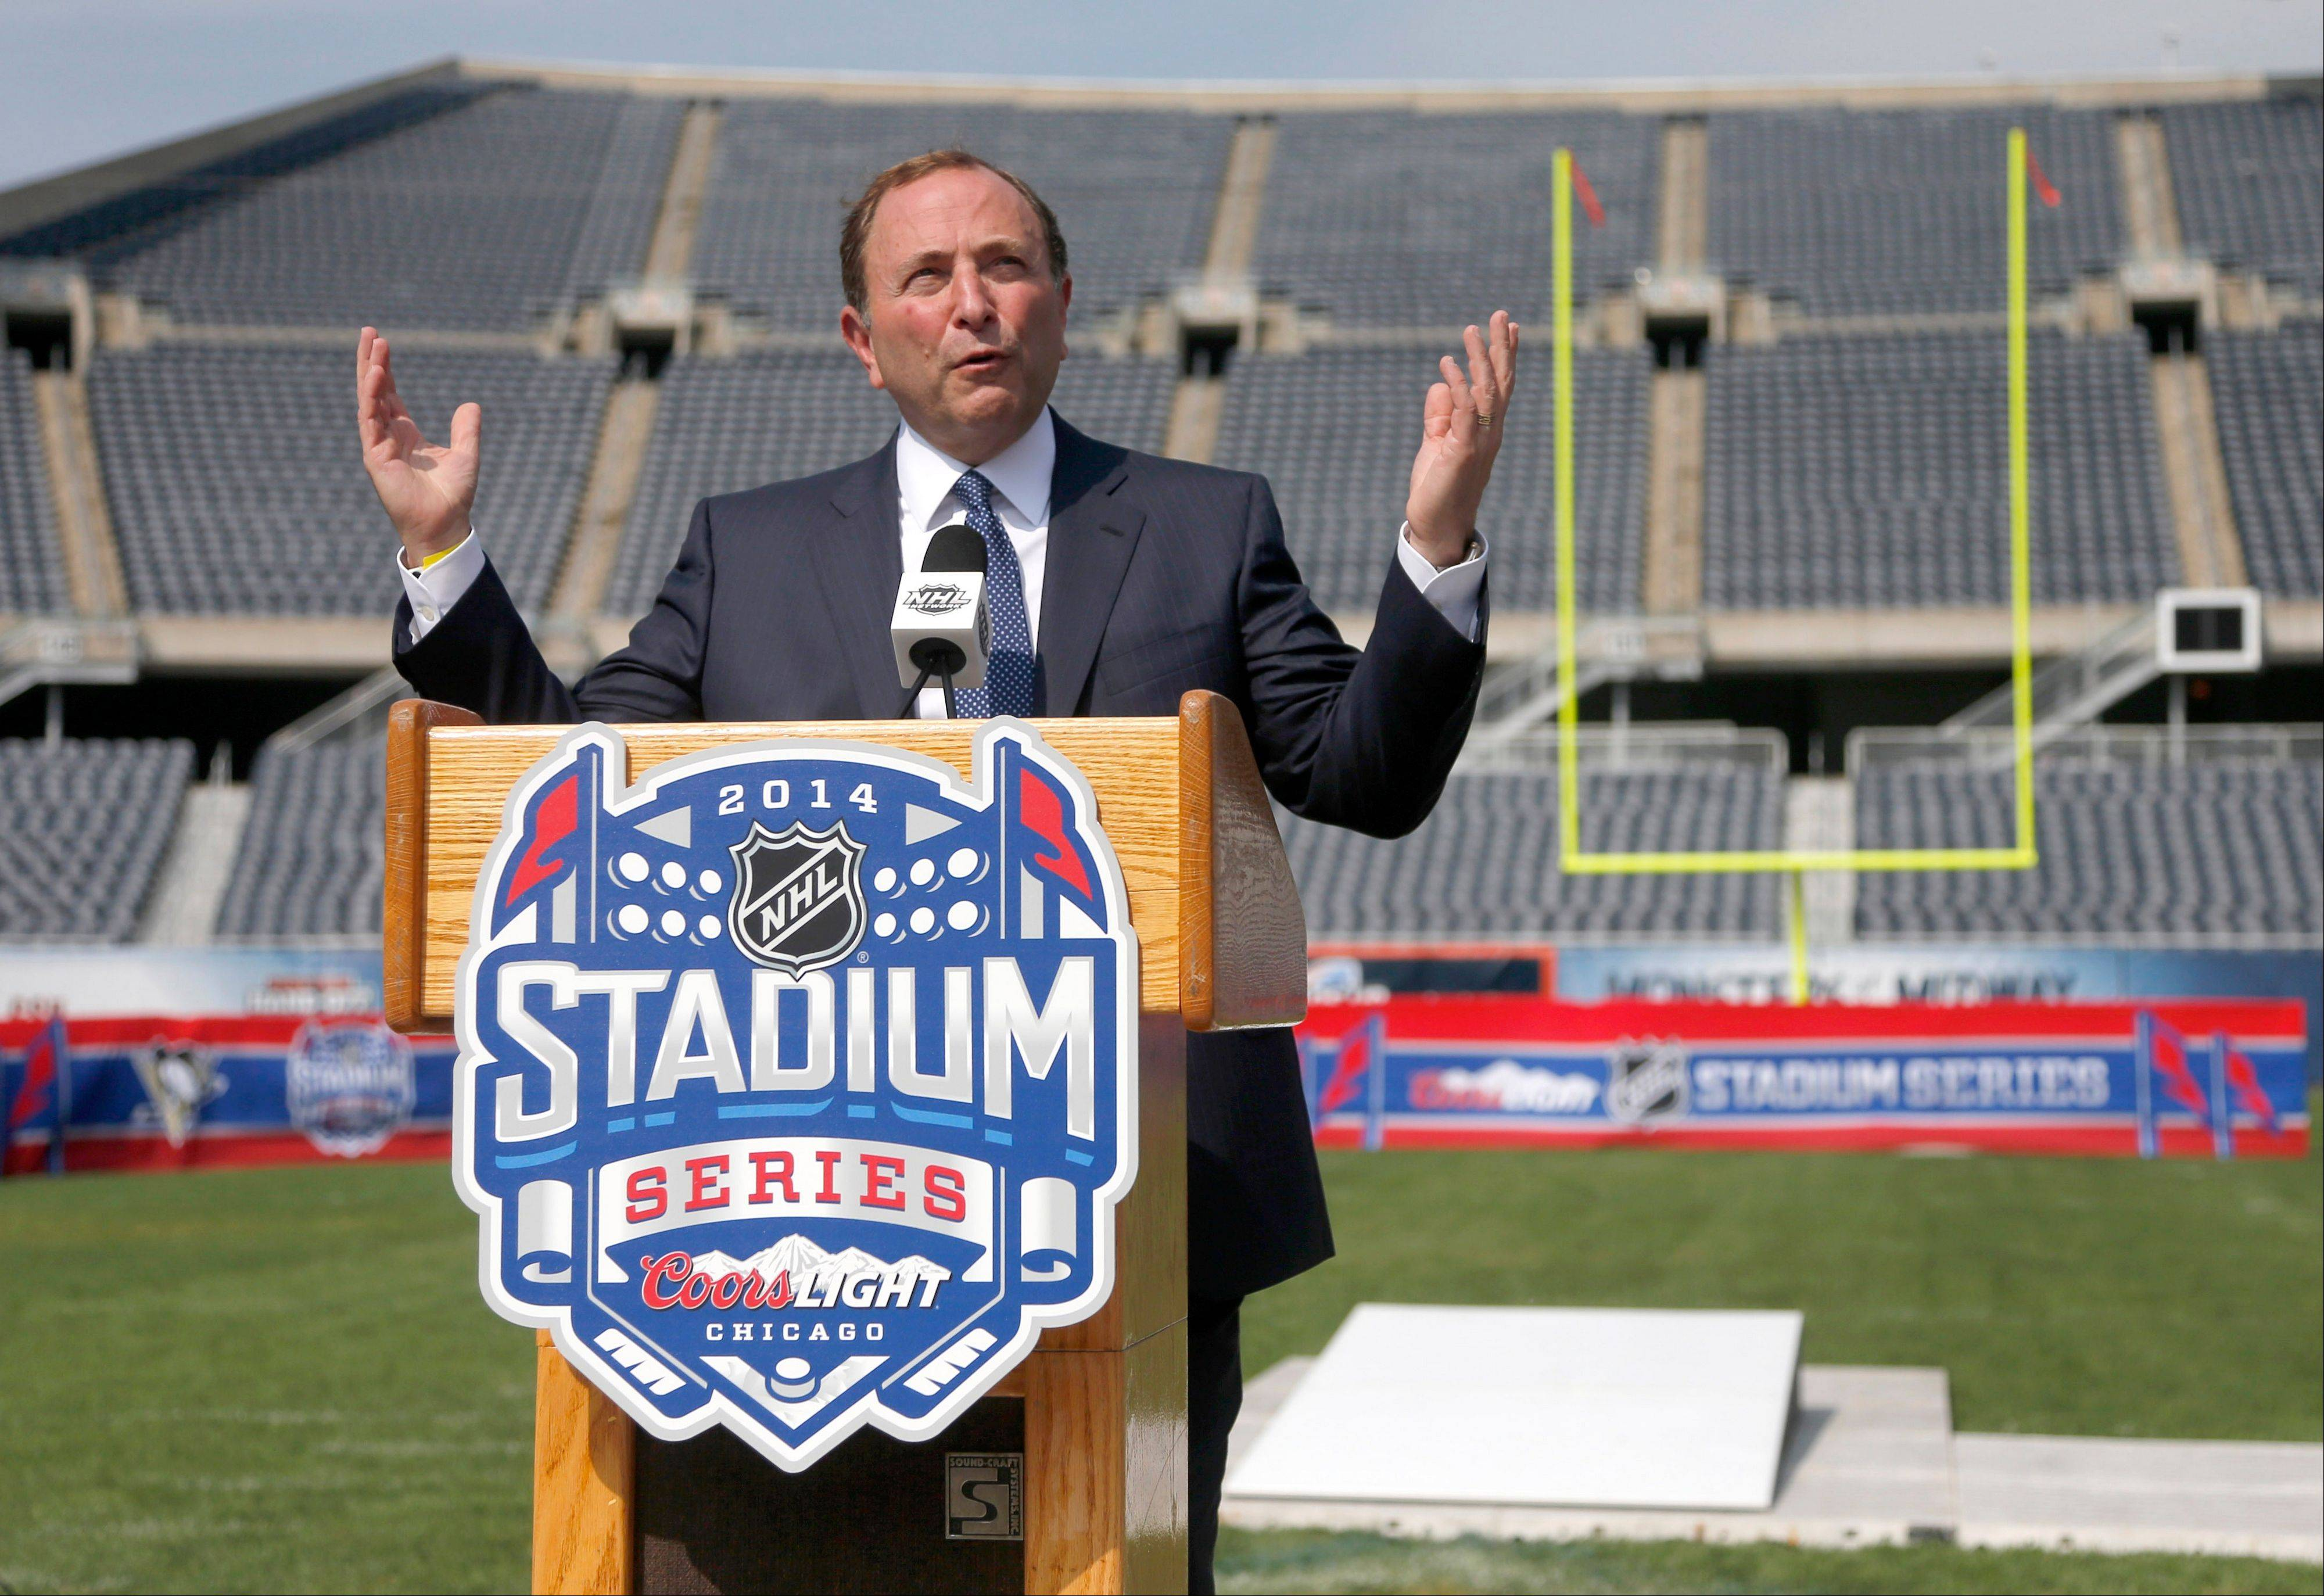 NHL Commissioner Gary Bettman discusses the Stadium Series hockey game between the Blackhawks and Pittsburgh Penguins to be held in March at Soldier Field in Chicago.